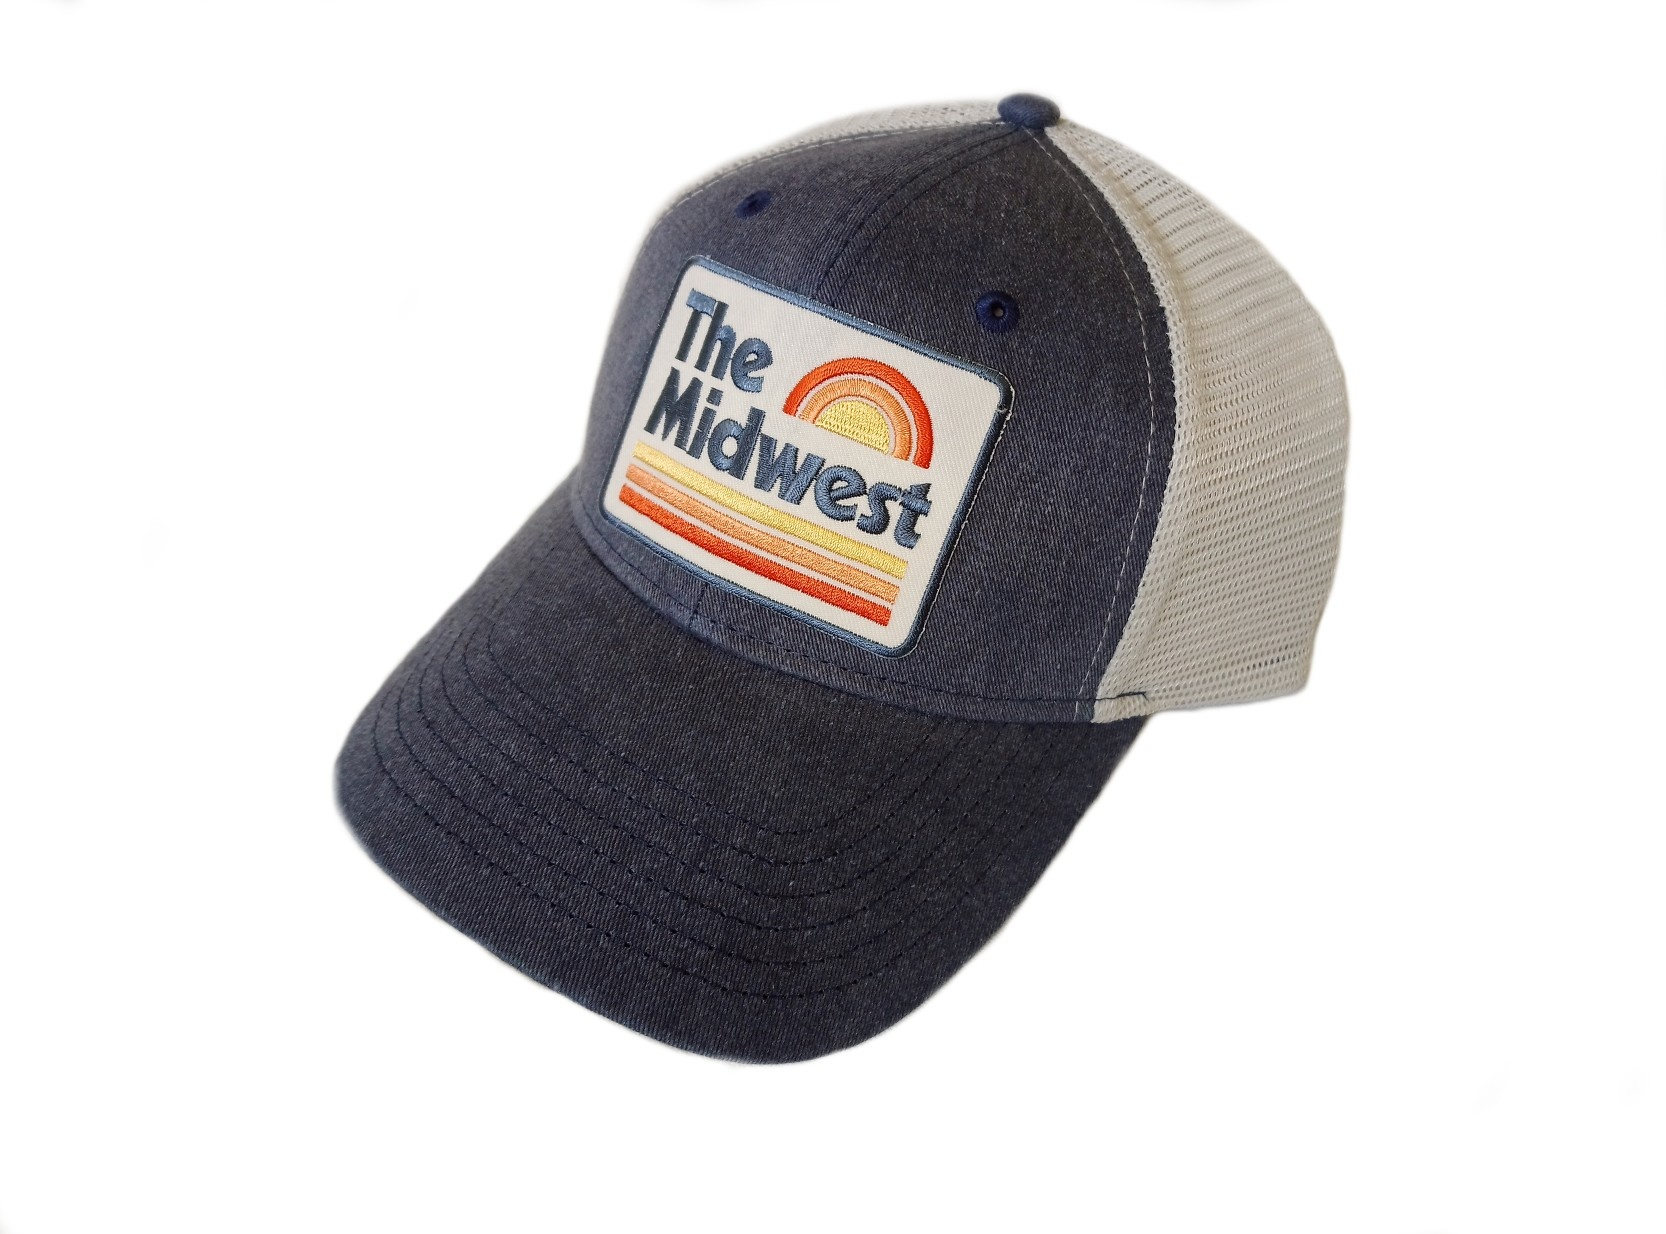 Midwest Vintage Navy Chambray SnapBack Hat